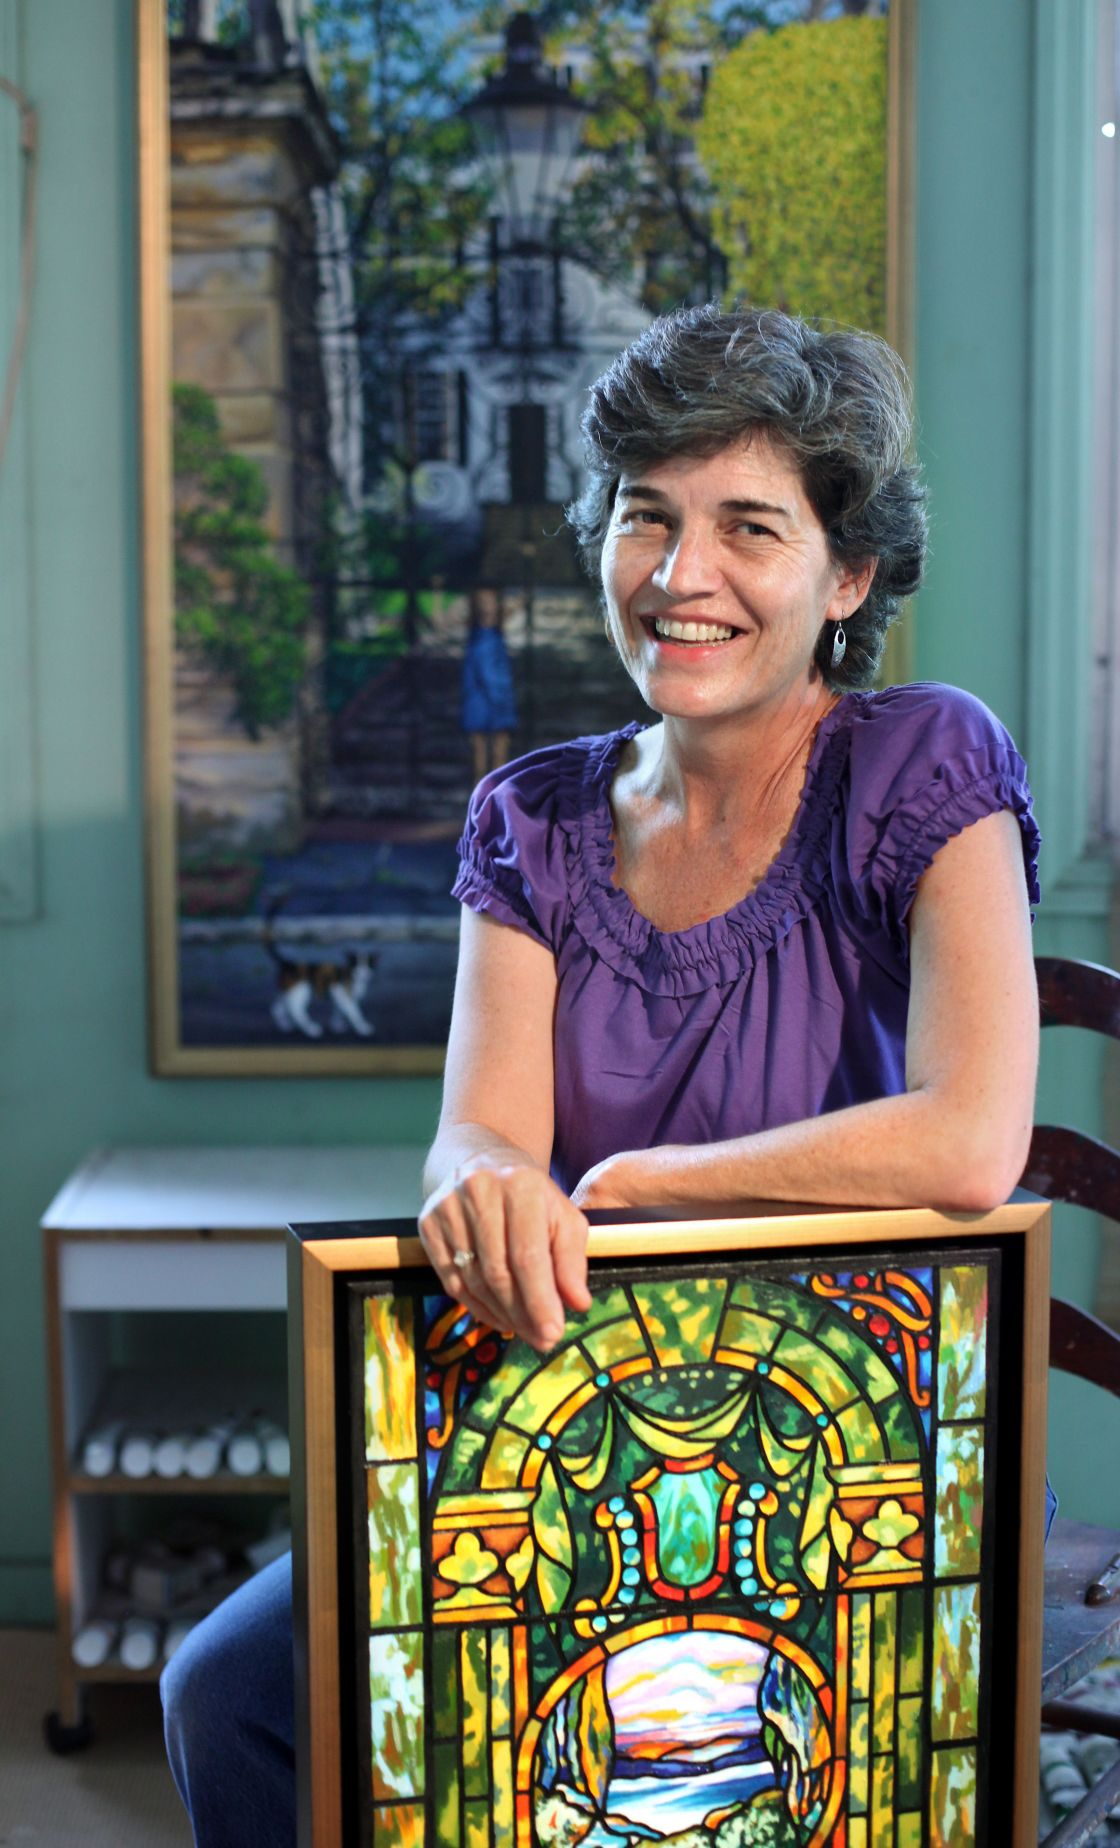 'The artist within' Ezell-Gilson captures 'Sacred Windows' for Piccolo exhibit